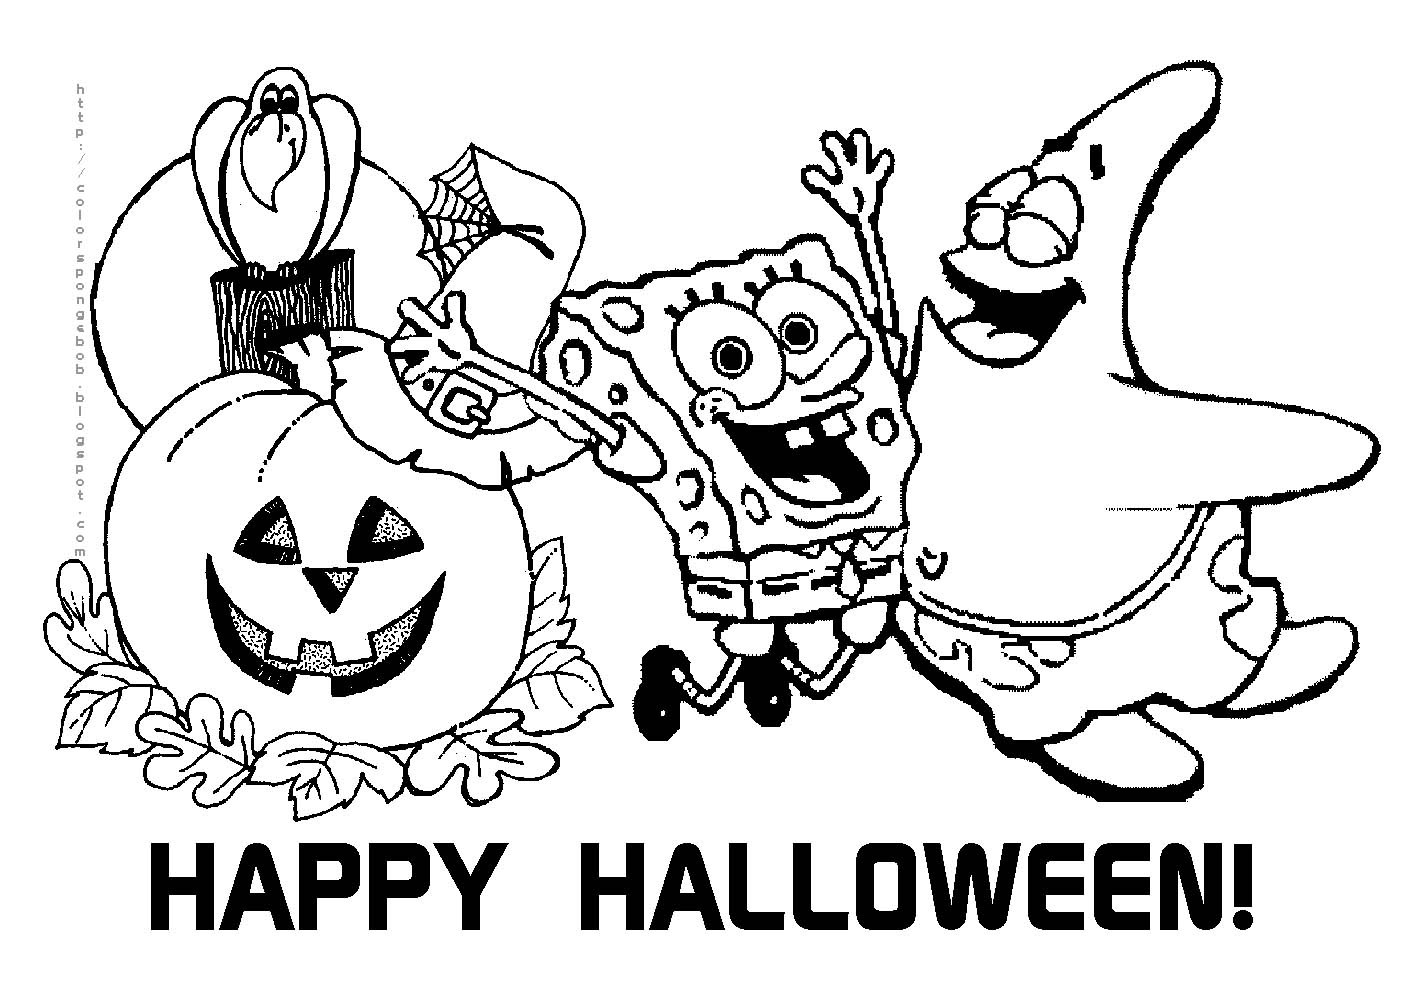 Halloween Coloring Pages Download | Free Coloring Sheets